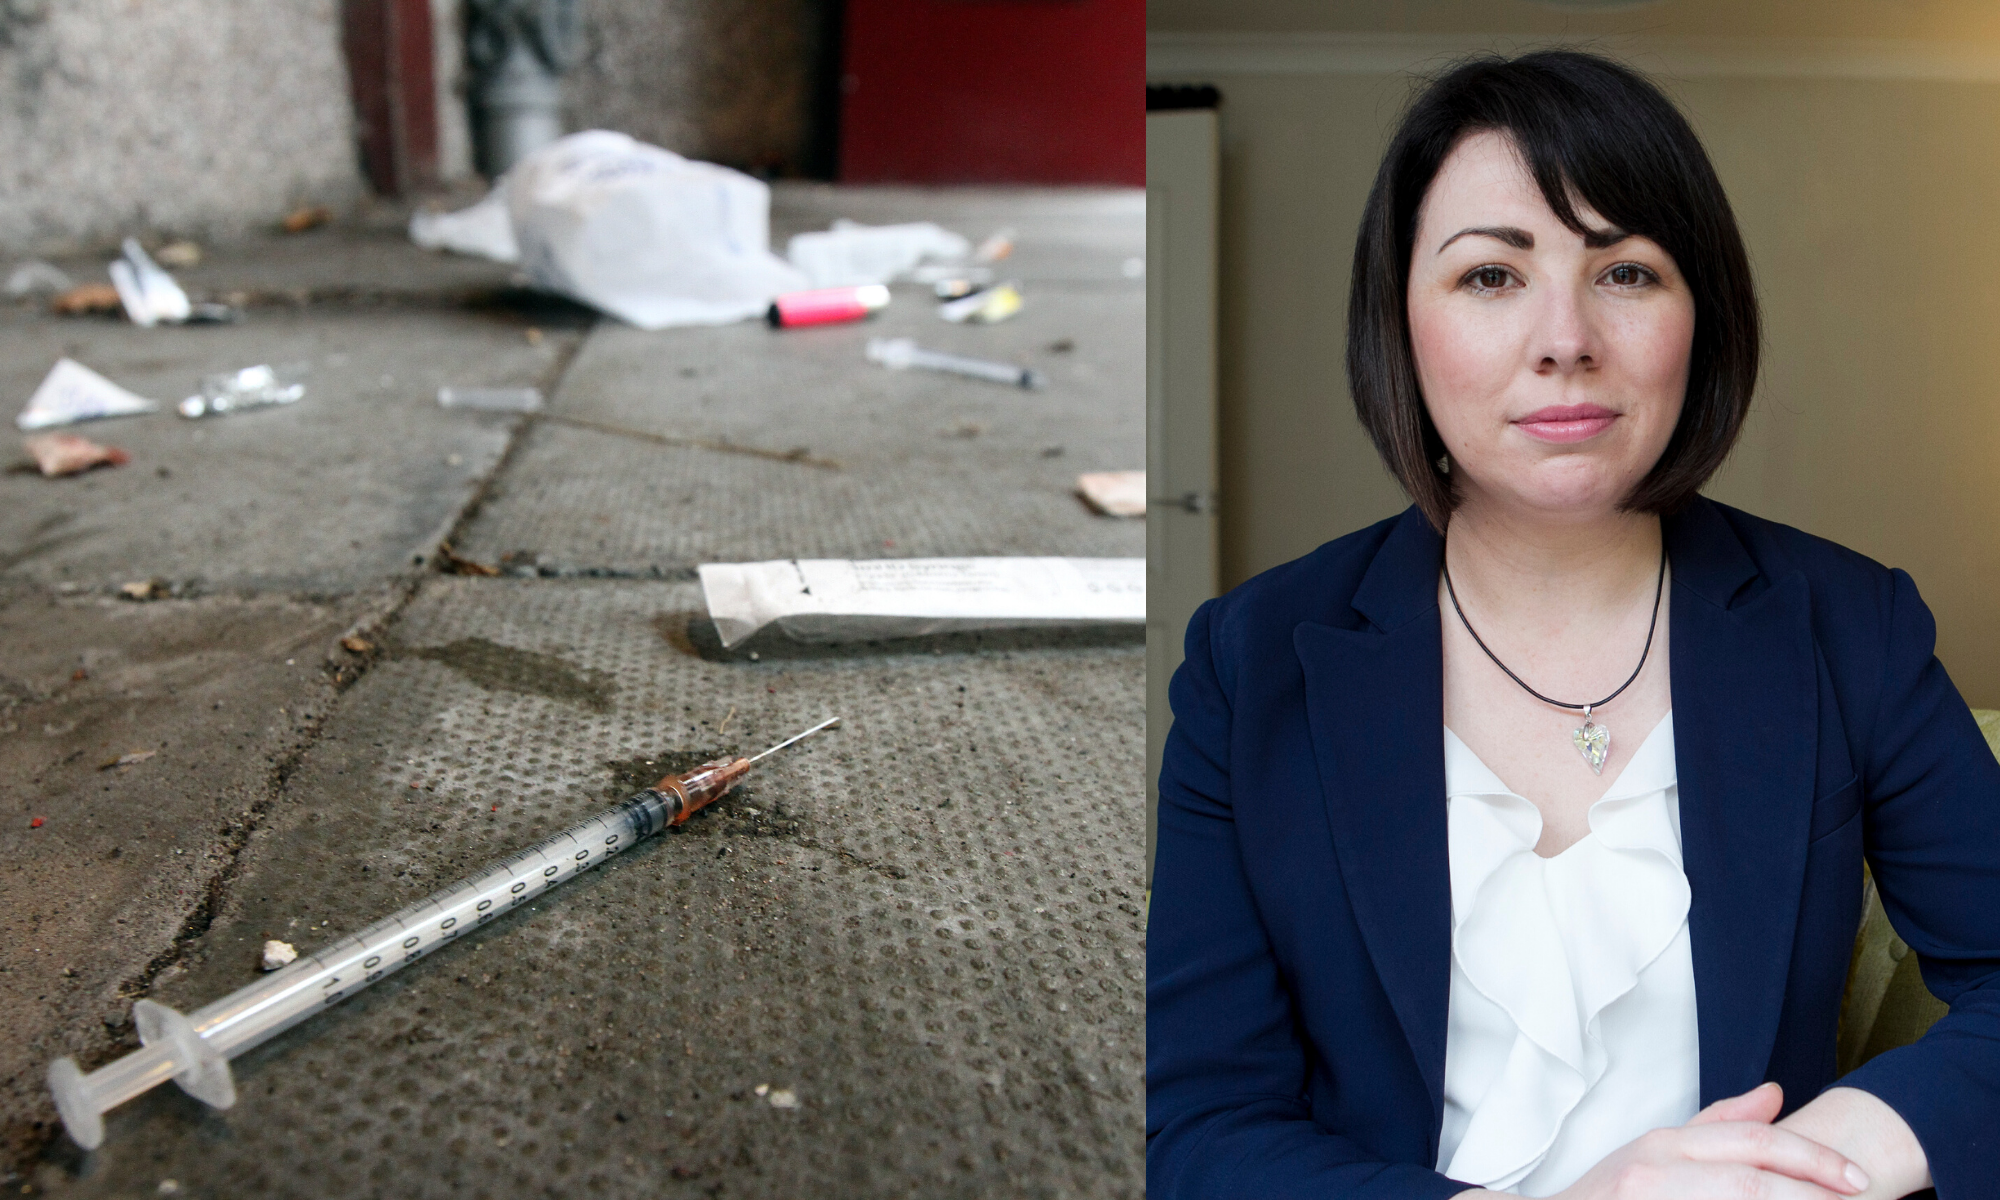 Scottish Labour health spokeswoman Monica Lennon has called for rapid action to cut drug deaths.